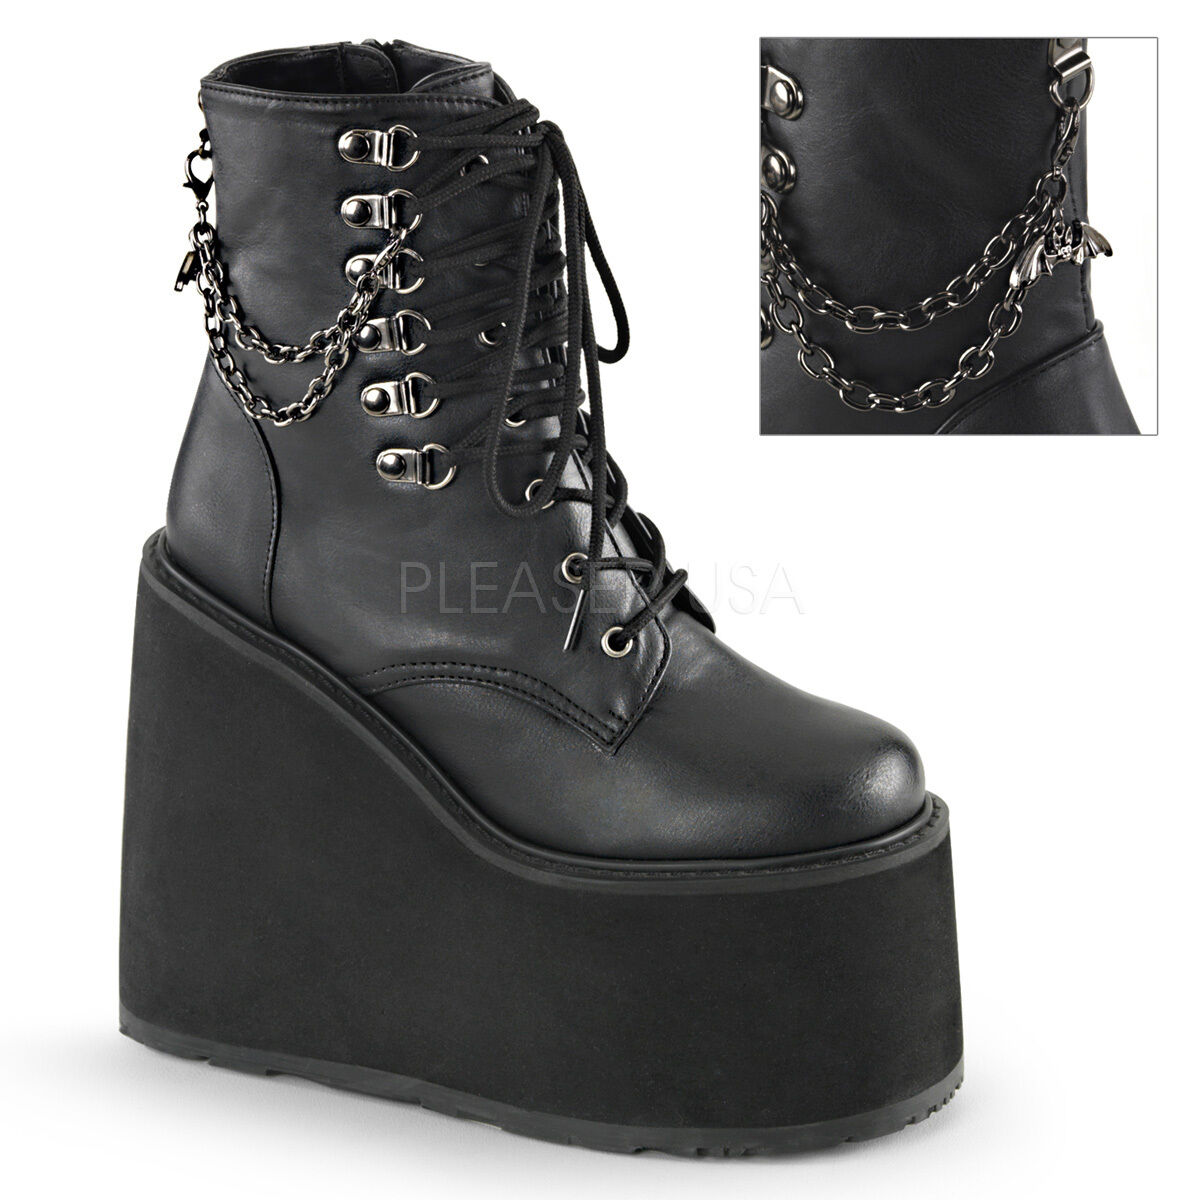 SWING-101 BIKER GOTH PUNK ROCK  COMBAT CASUAL EVA WEDGE LACE UP  ANKLE BOOT